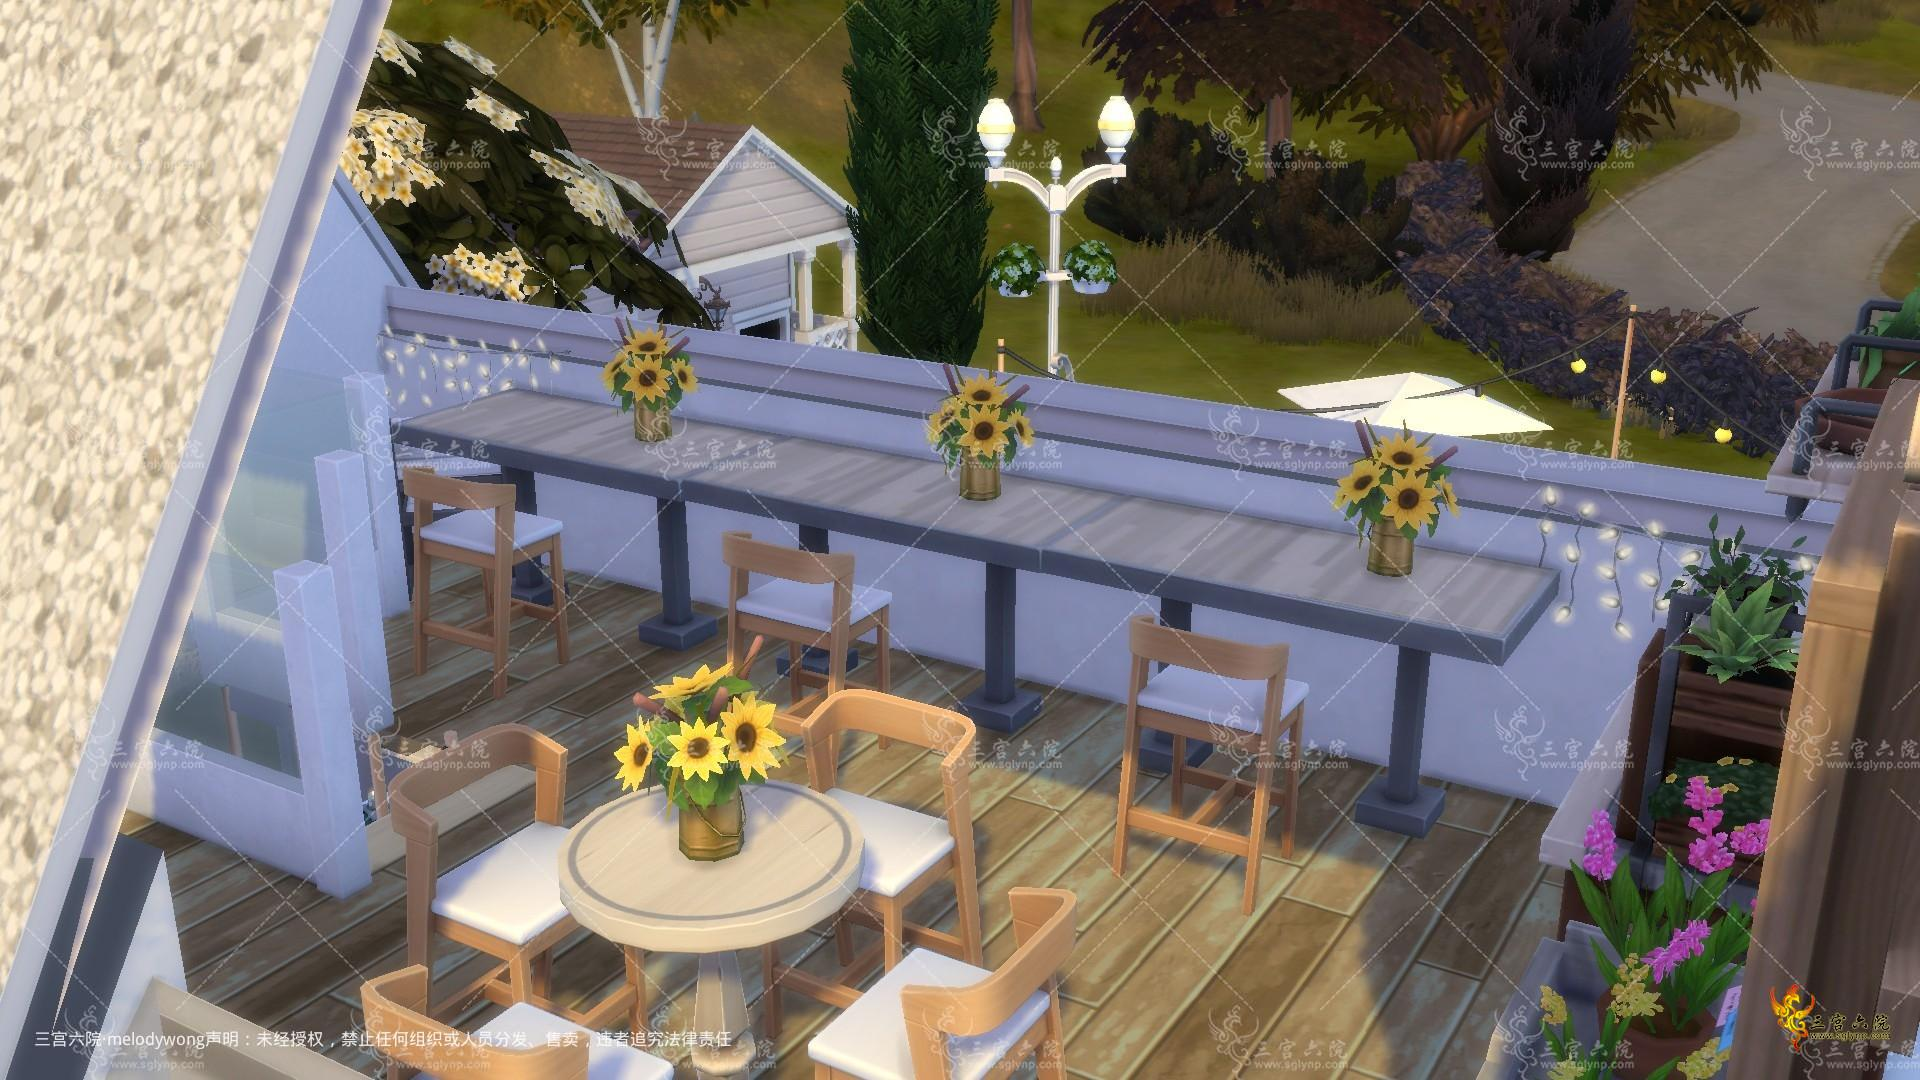 The Sims 4 2021_8_26 下午 03_13_39.png